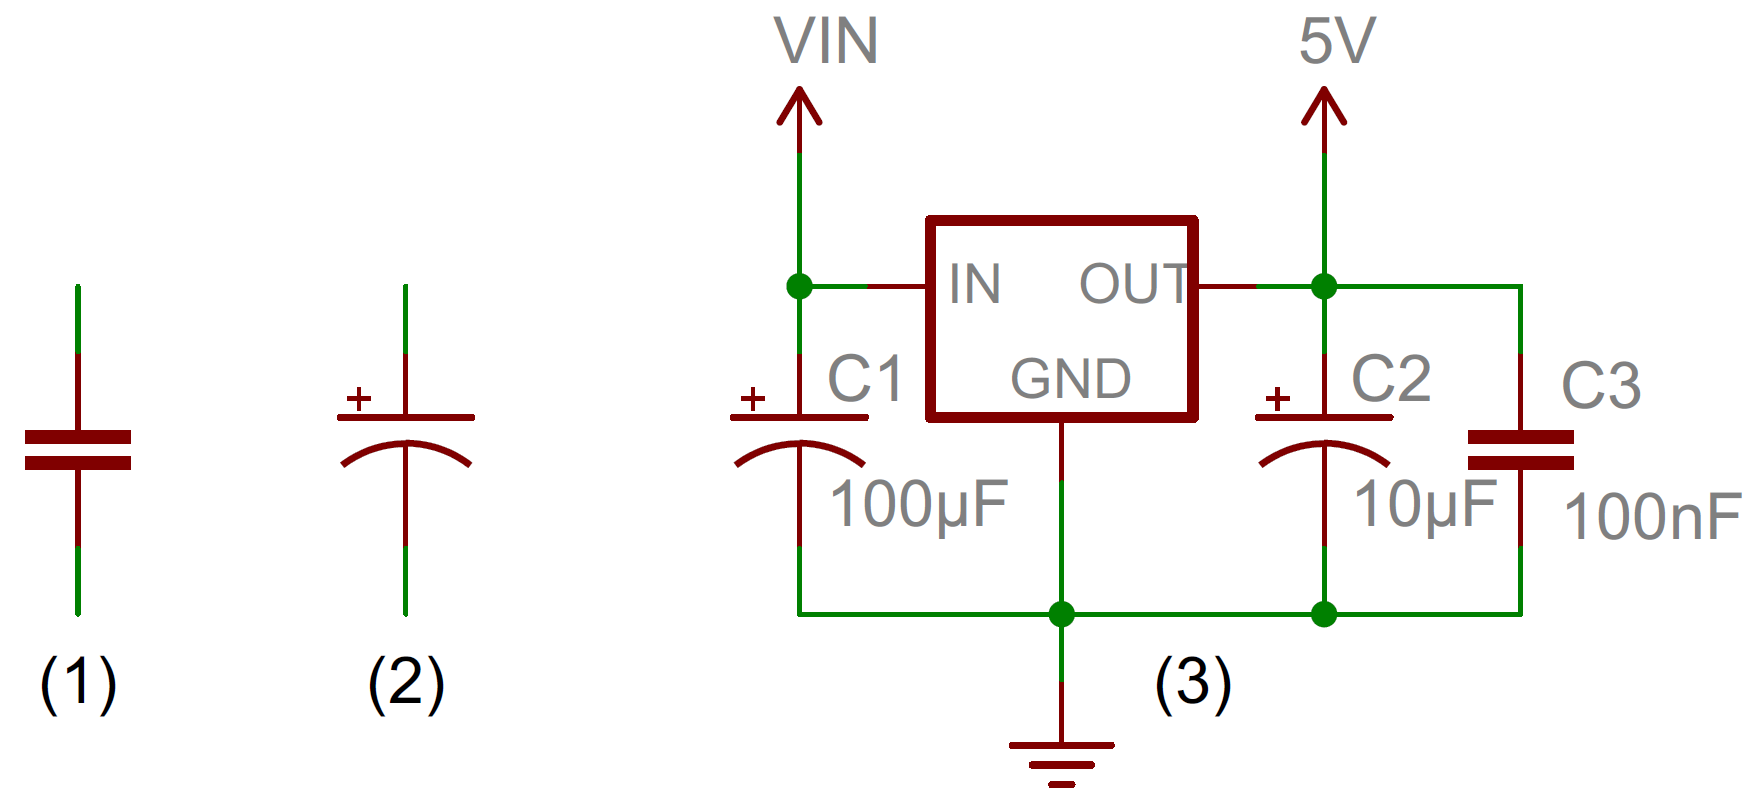 Capacitors Ac Generator Voltage Wiring Diagram Capacitor Circuit Symbols